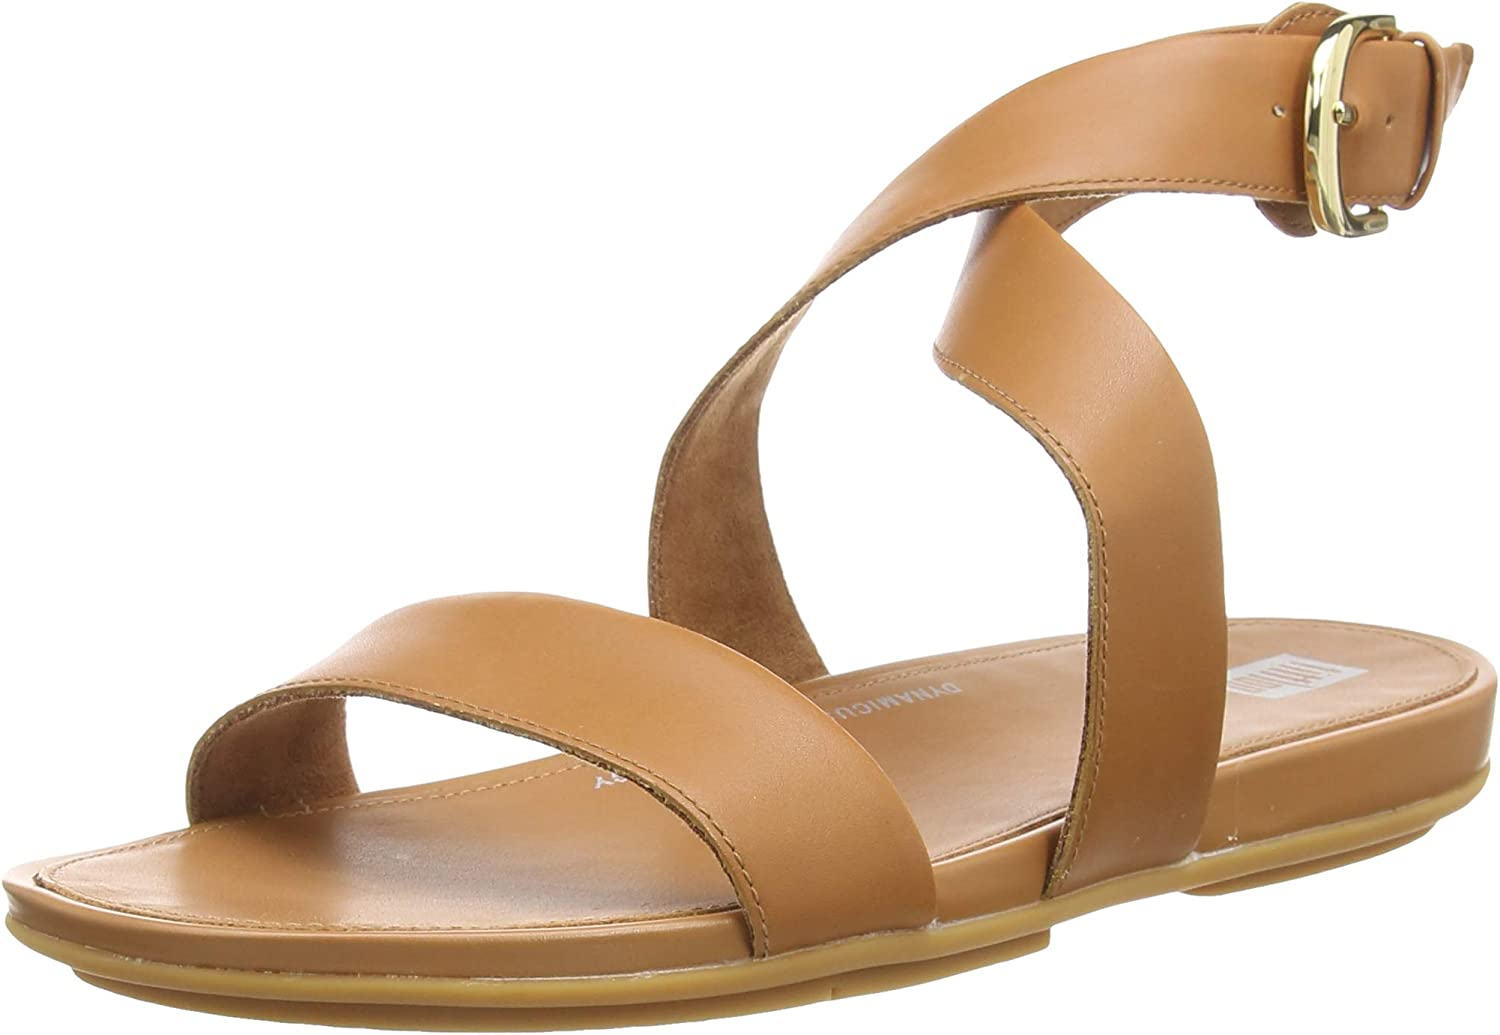 Fitflop Women's Ankle-Strap Daily bargain sale discount Sandals